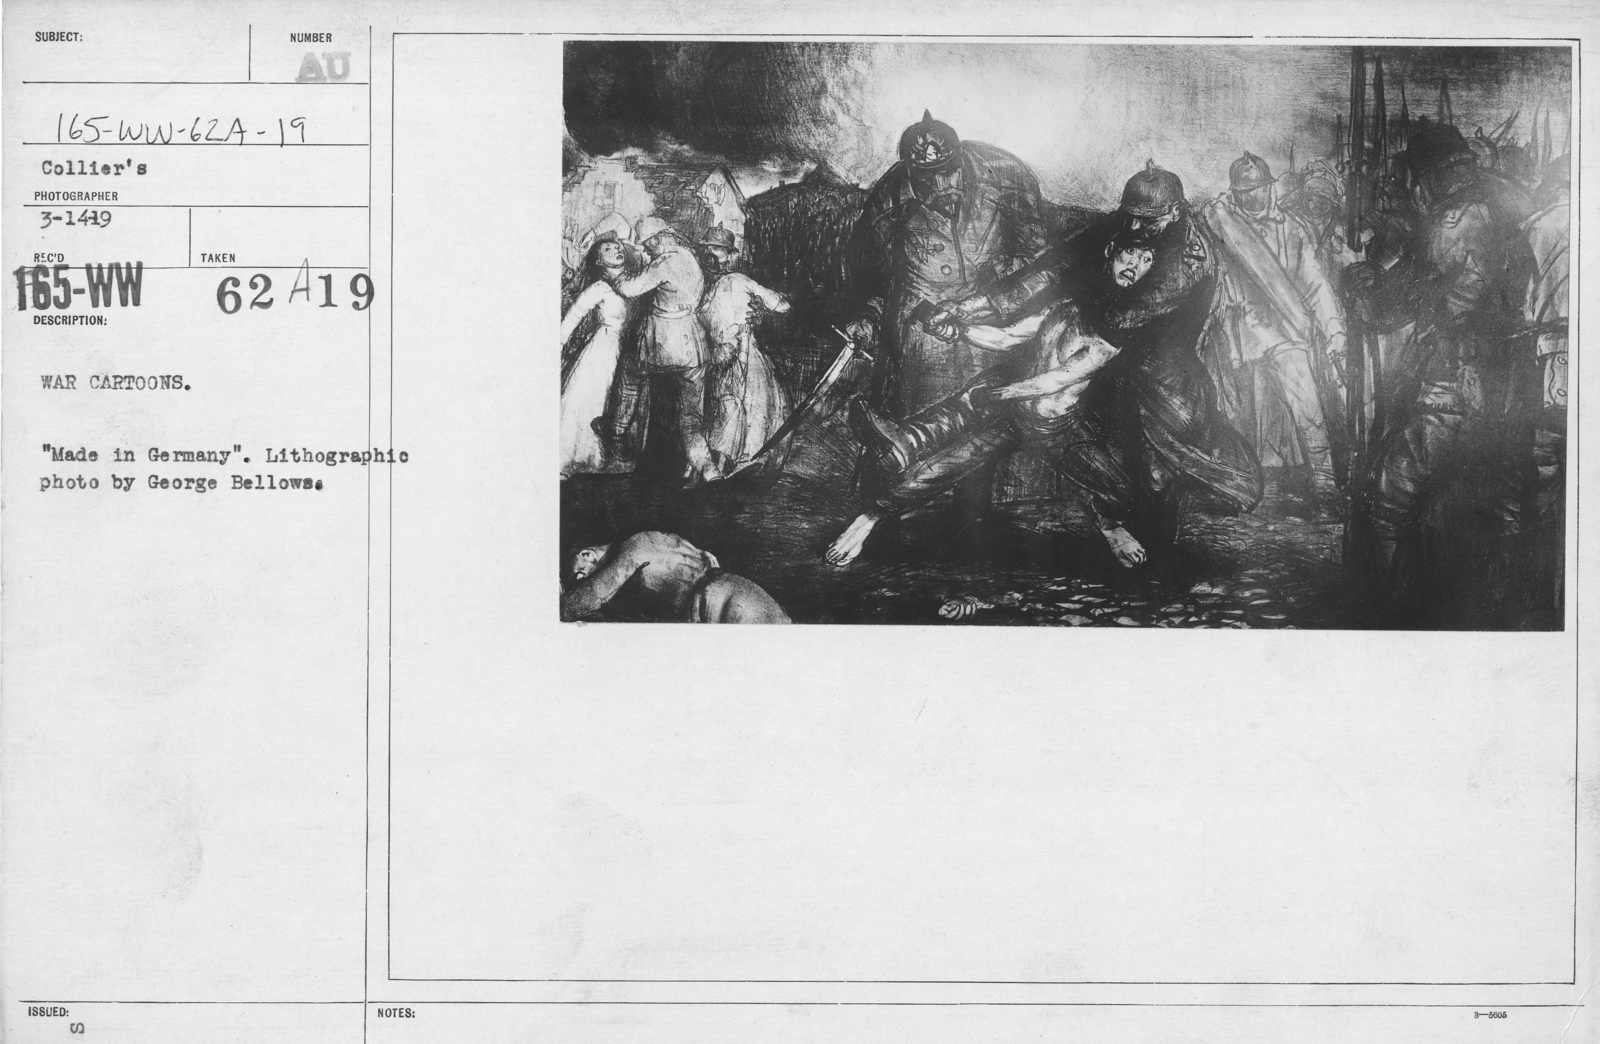 """Artists - American Artworks (Wartime Cartoons) - War Cartoons. """"Made in Germany."""" Lithographic photo by George Bellows"""